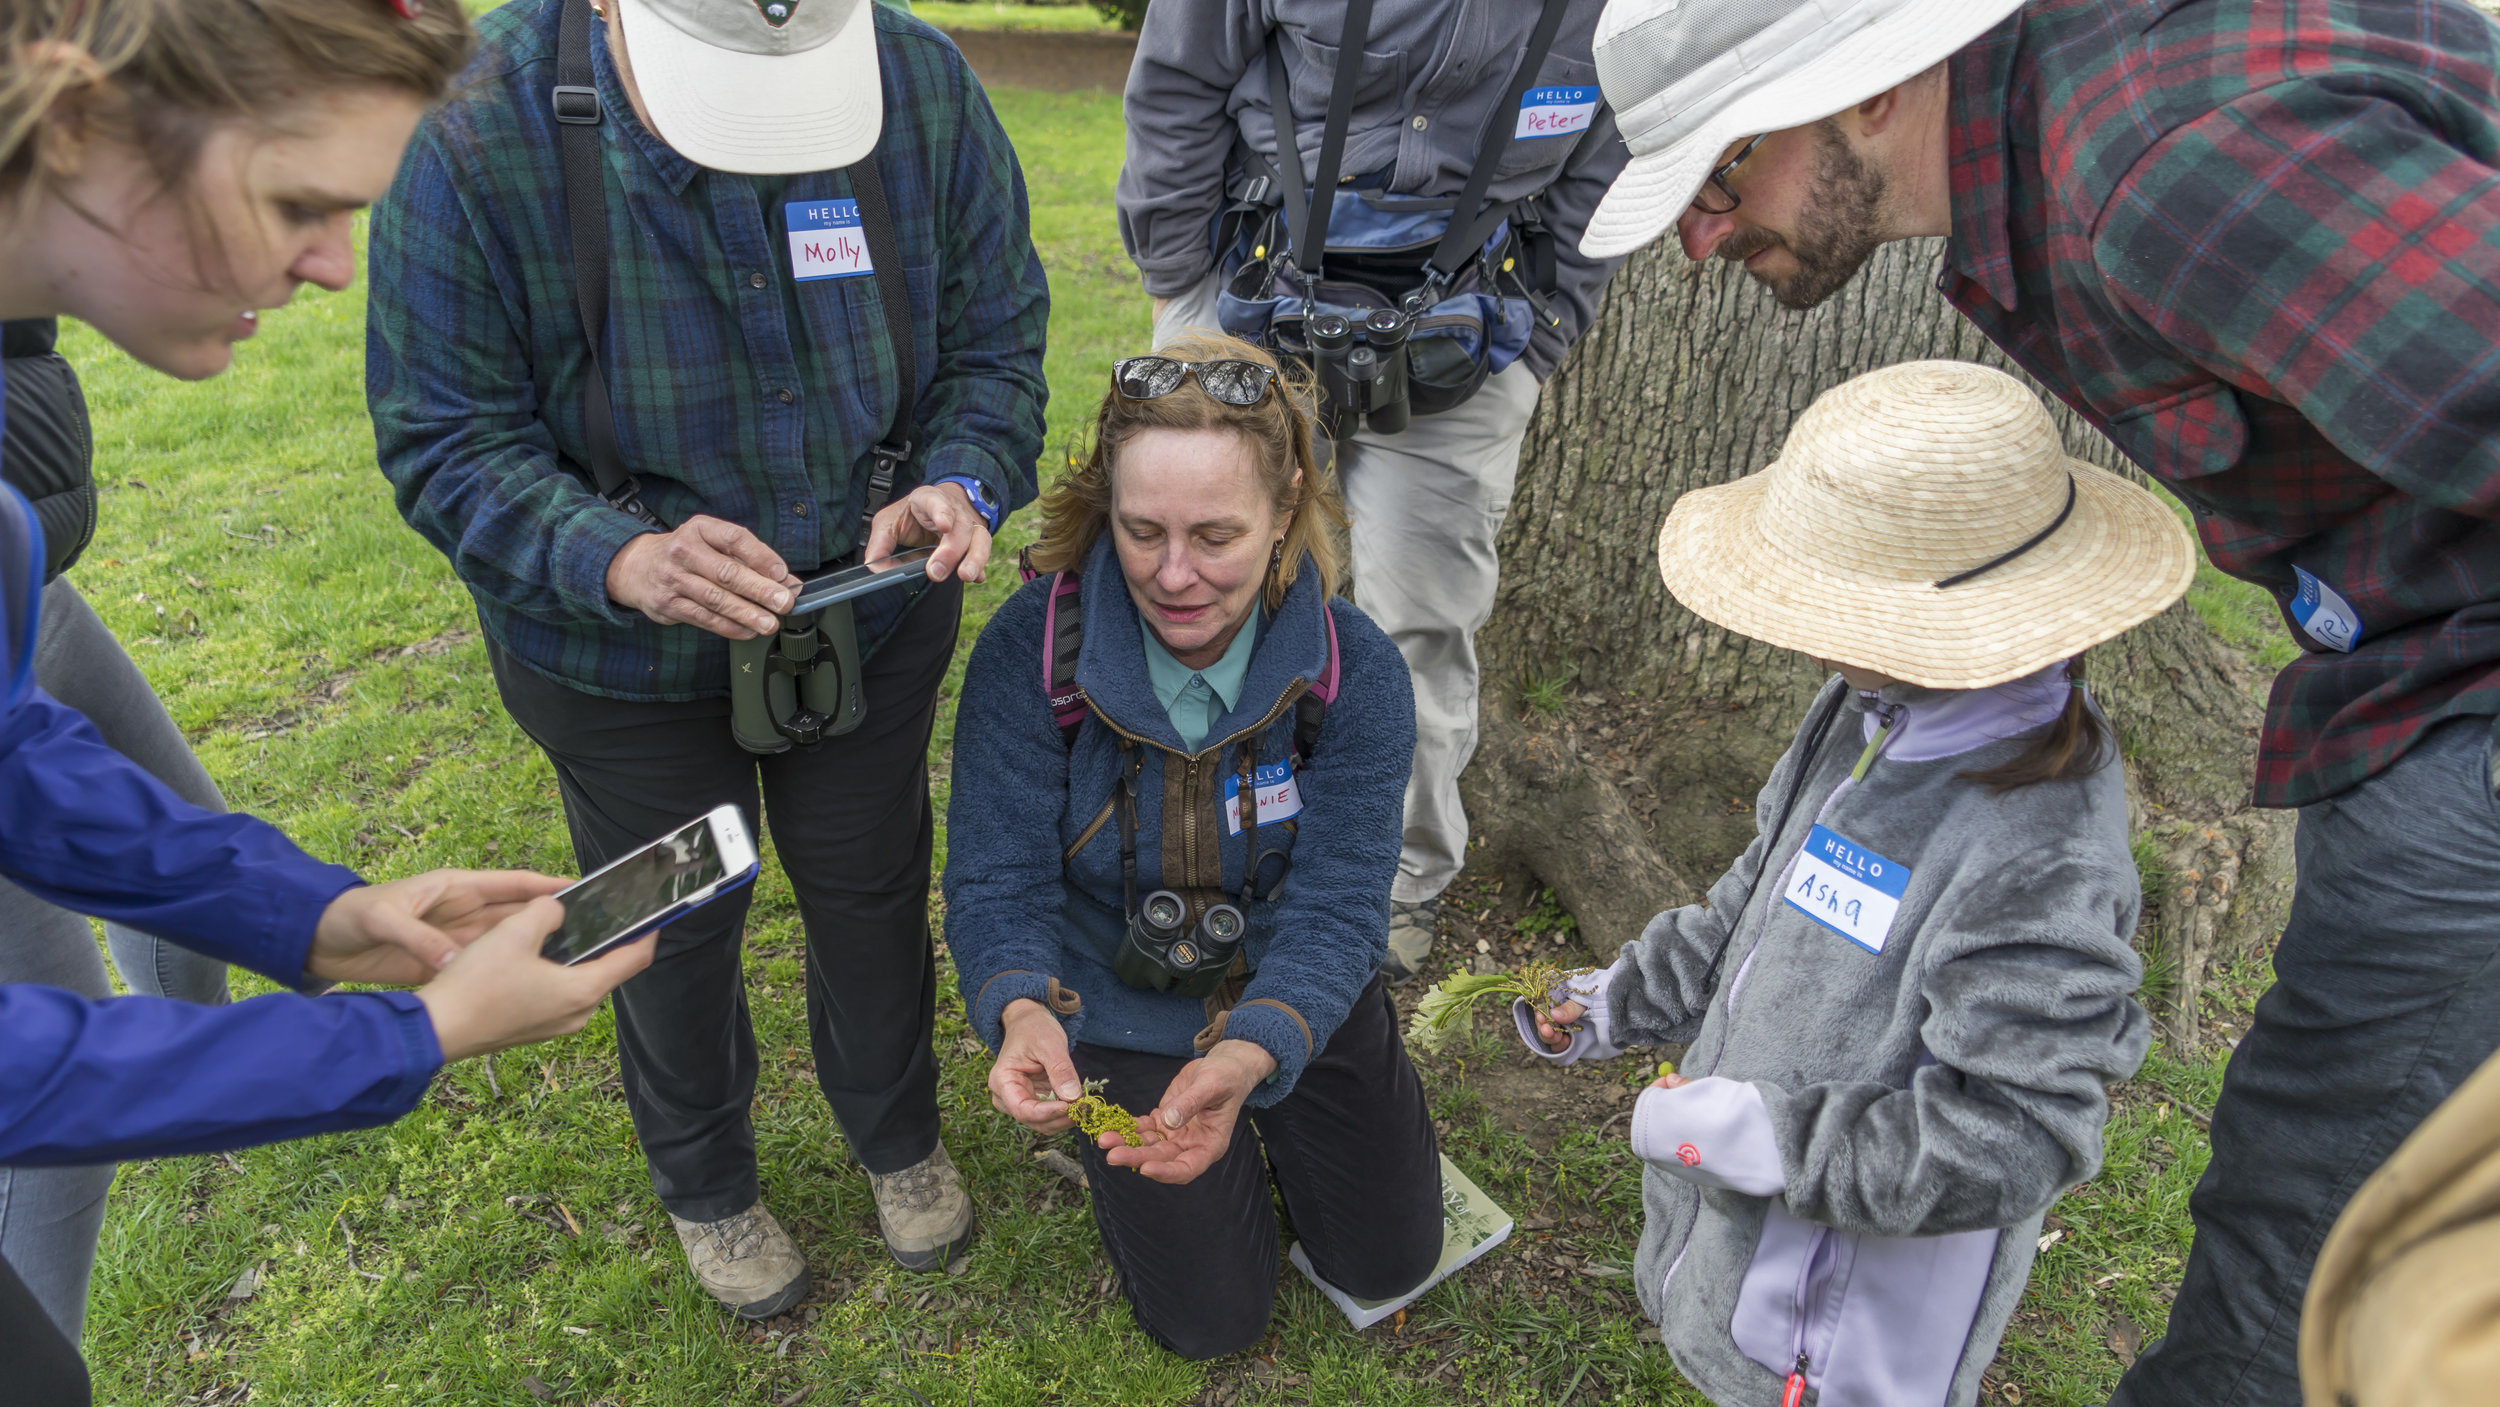 Local naturalist and author Melanie Choukas-Bradley demonstrates tree identification to local citizen scientists adding City Nature Challenge observations to the global iNaturalist database. (Photo: Ana Ka'ahanui)